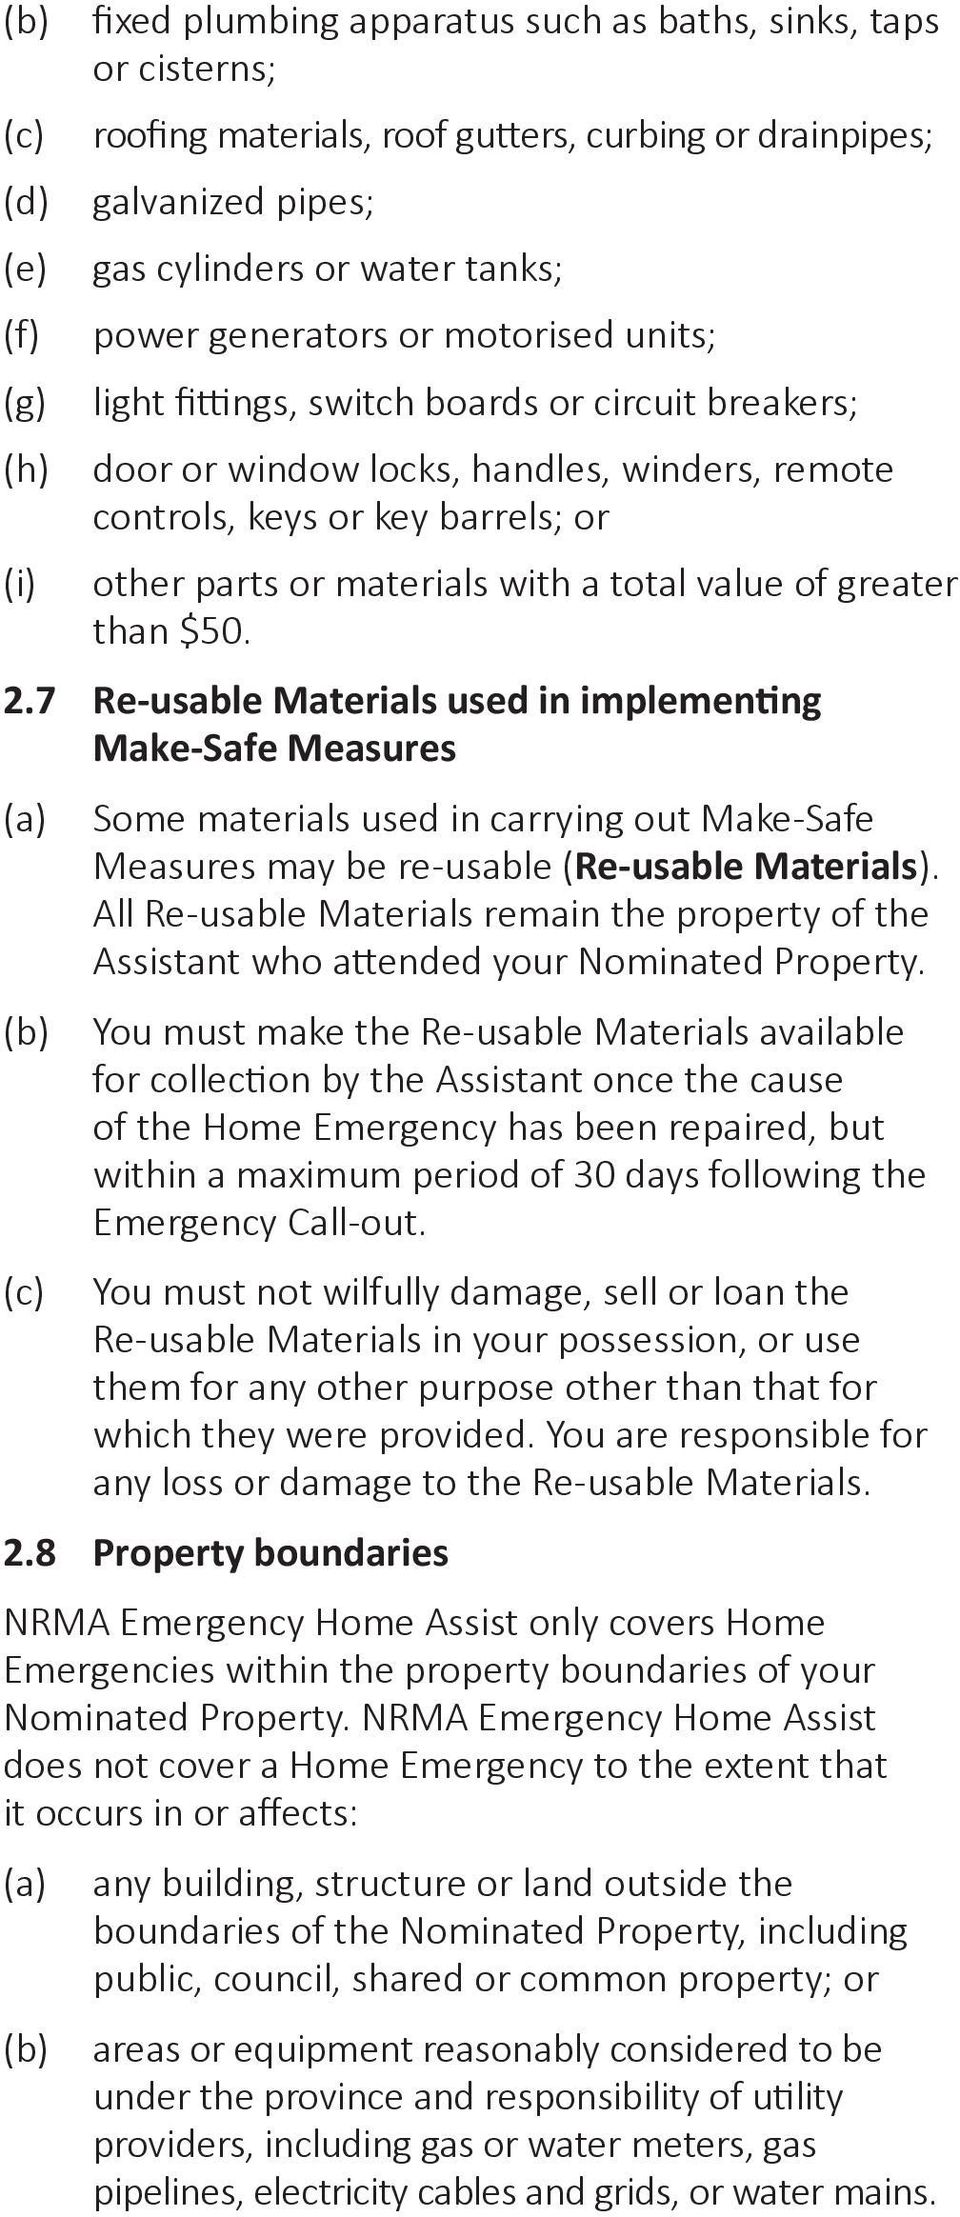 a total value of greater than $50. 2.7 Re-usable Materials used in implementing Make-Safe Measures (c) Some materials used in carrying out Make-Safe Measures may be re-usable (Re-usable Materials).